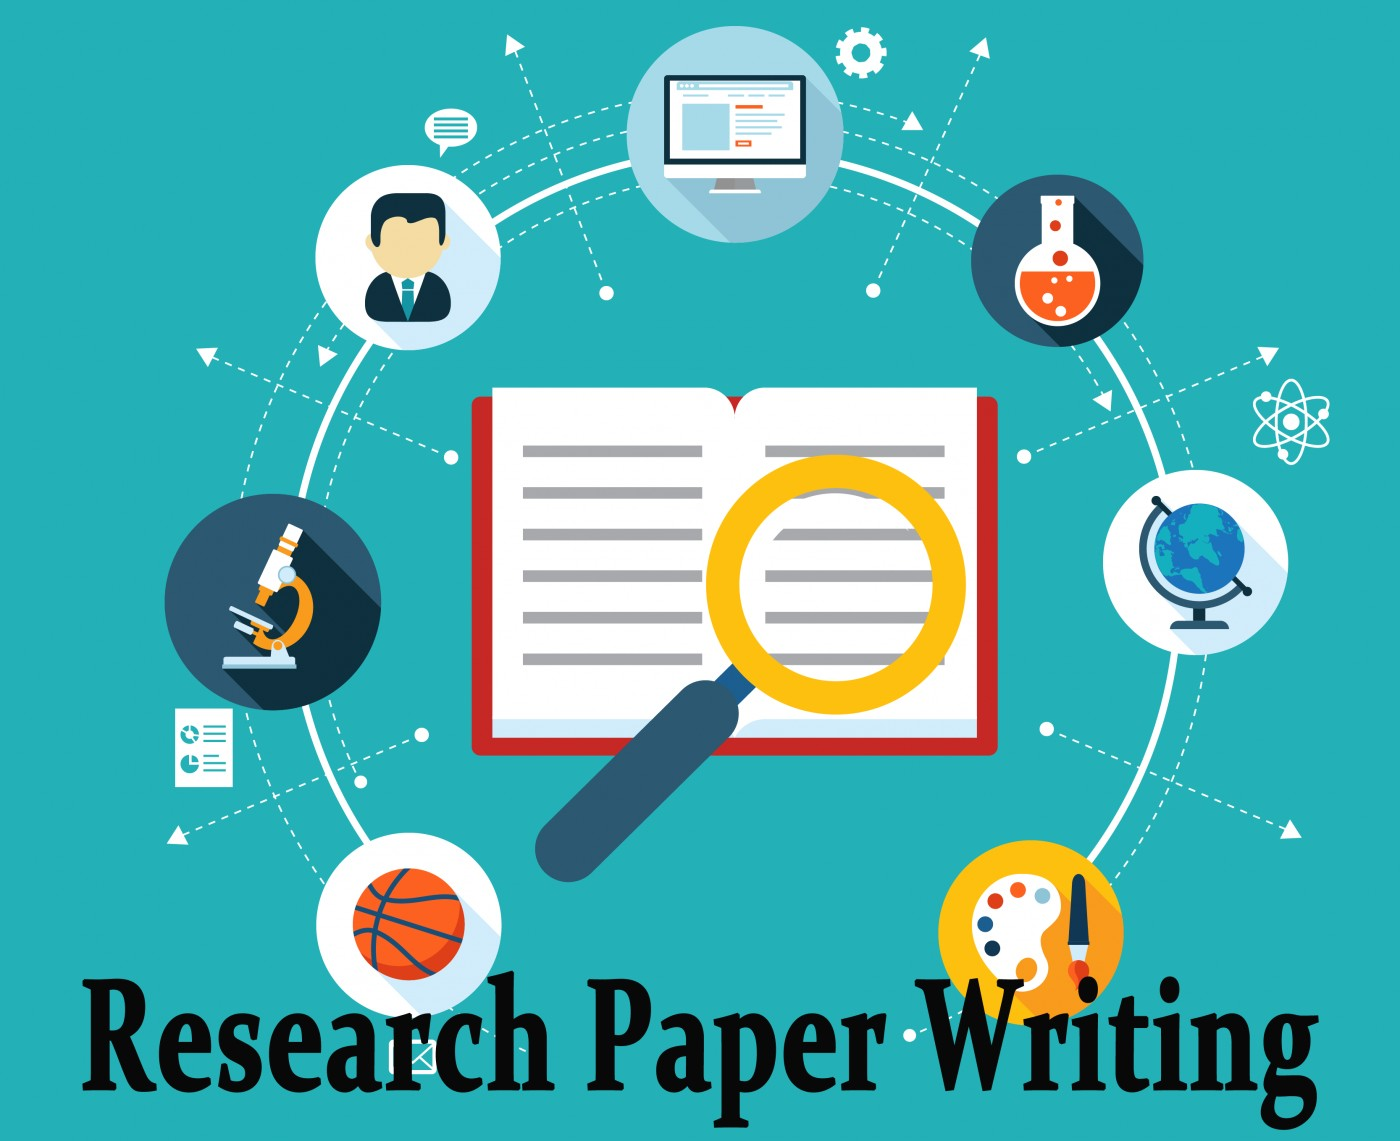 017 Writing Research Papers Paper 503 Effective Magnificent A Scientific Ppt In Political Science Baglione Pdf 1400